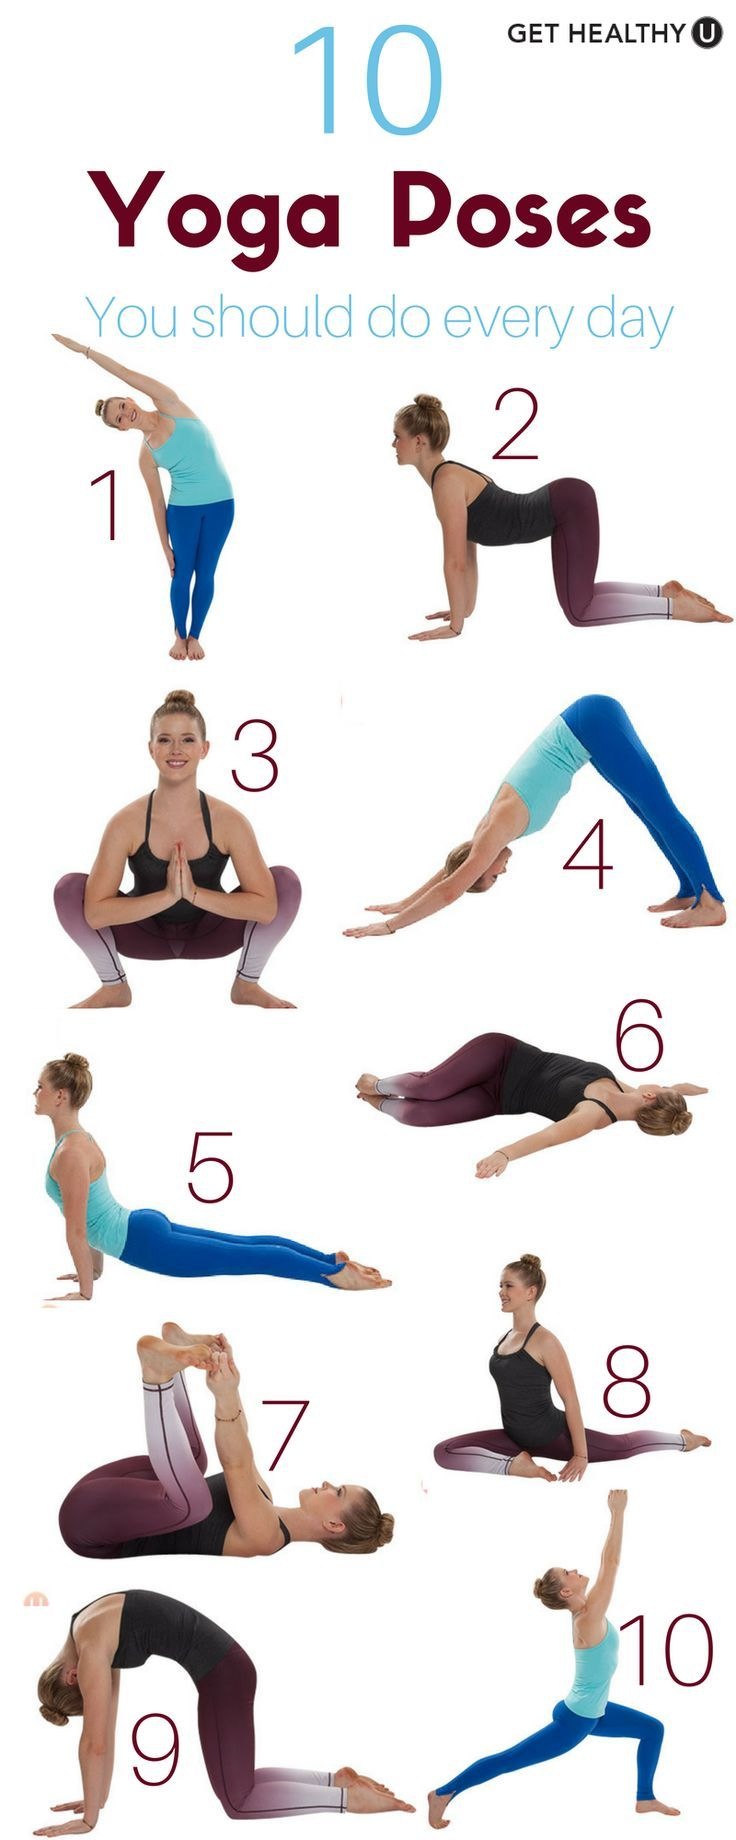 Check out our simple yoga workout! We've given you 10 yoga poses you should do every day. You can do these almost anywhere, at anytime, and you WILL feel amazing!  Find more relevant stuff: victoriajohnson.wordpress.com